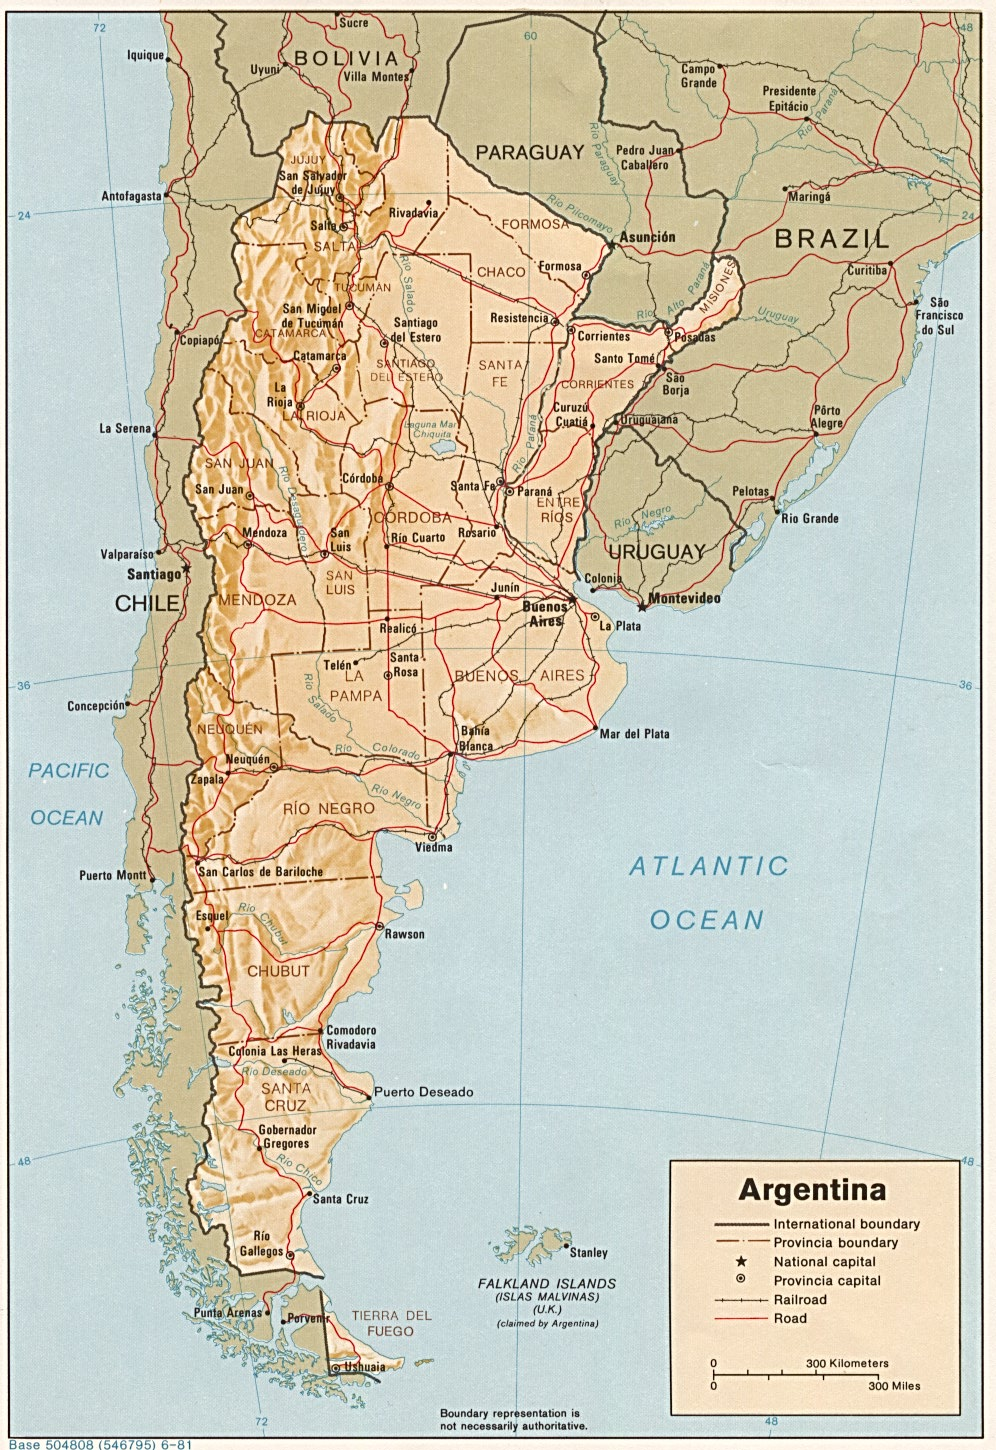 Argentina Maps - Perry-Castañeda Map Collection - UT Library ...